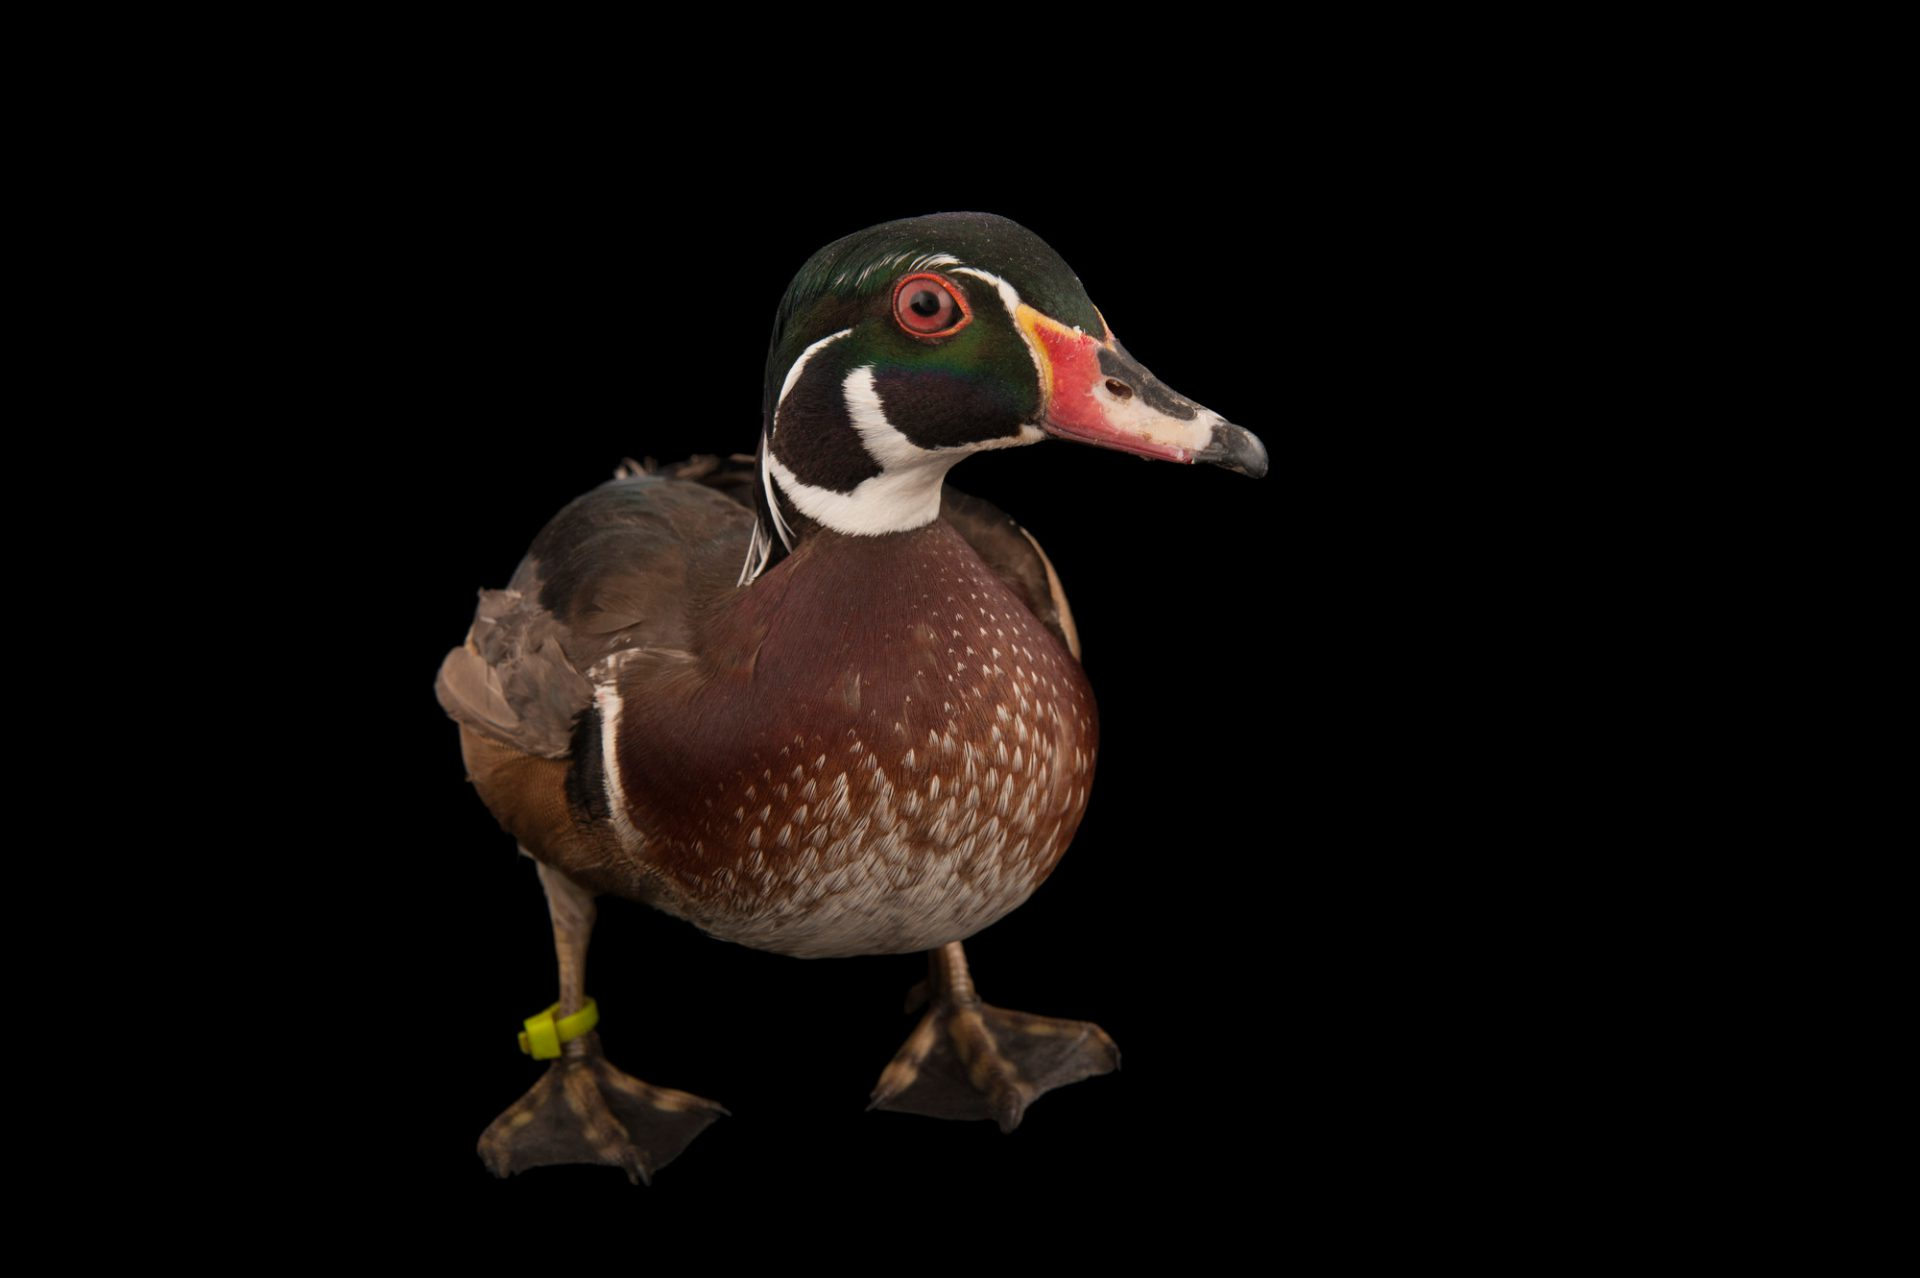 Picture of a wood duck (Aix sponsa) at the Lincoln Children's Zoo.